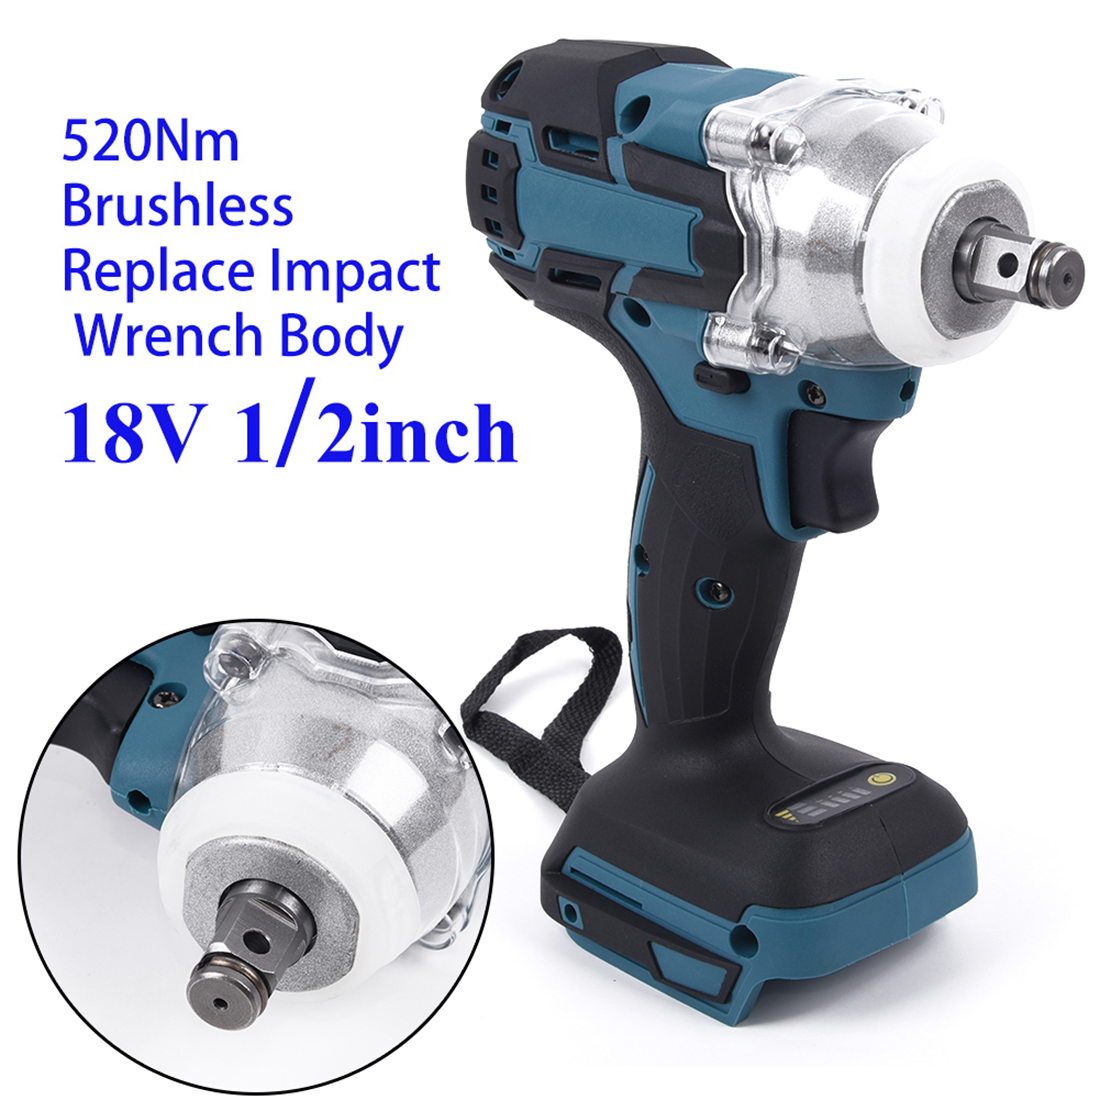 18V 520Nm 1/2in Brushless Impact Wrench Body Without Battery Torque Electric Wrench For Makita Battery 3200rpm Multi-purpose